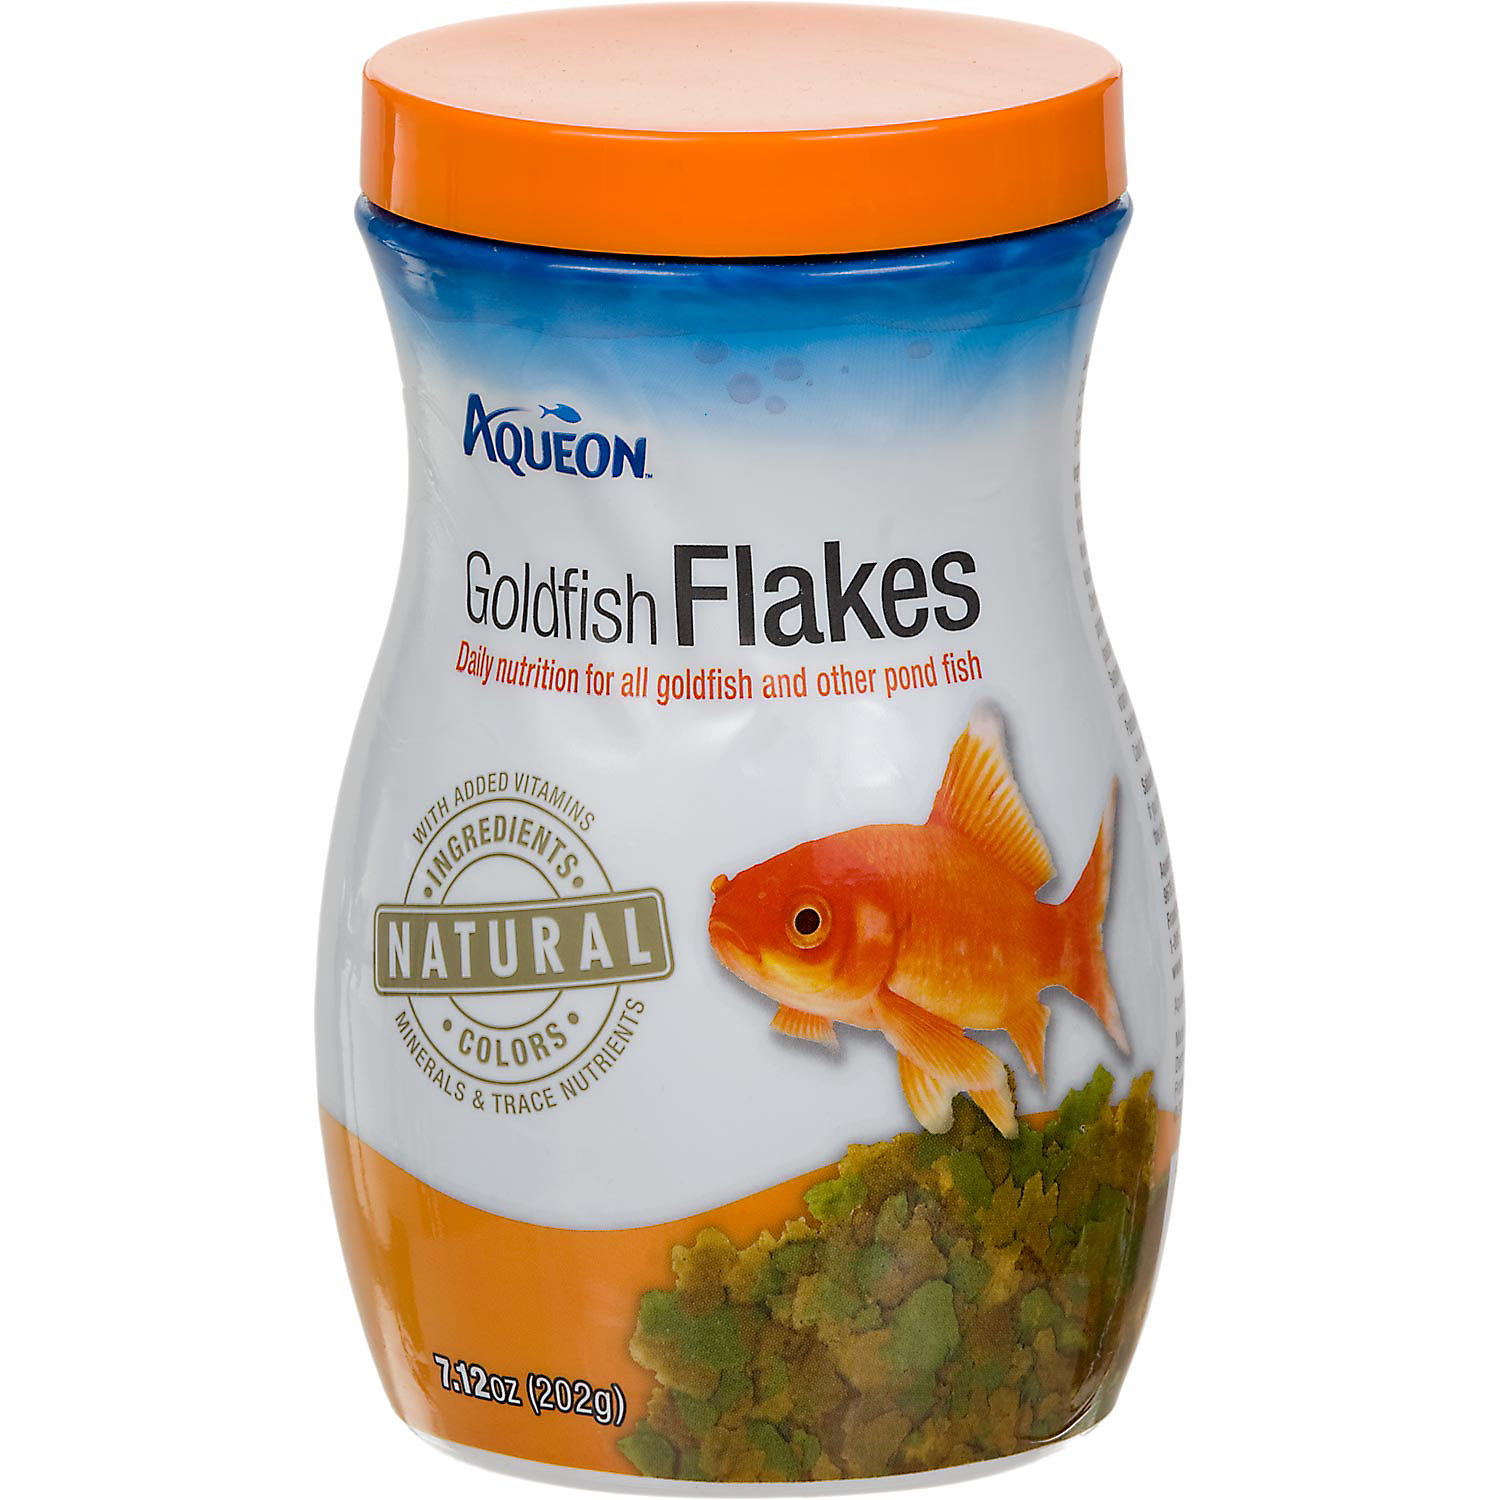 Aqueon Goldfish Flakes 7.12 Oz.